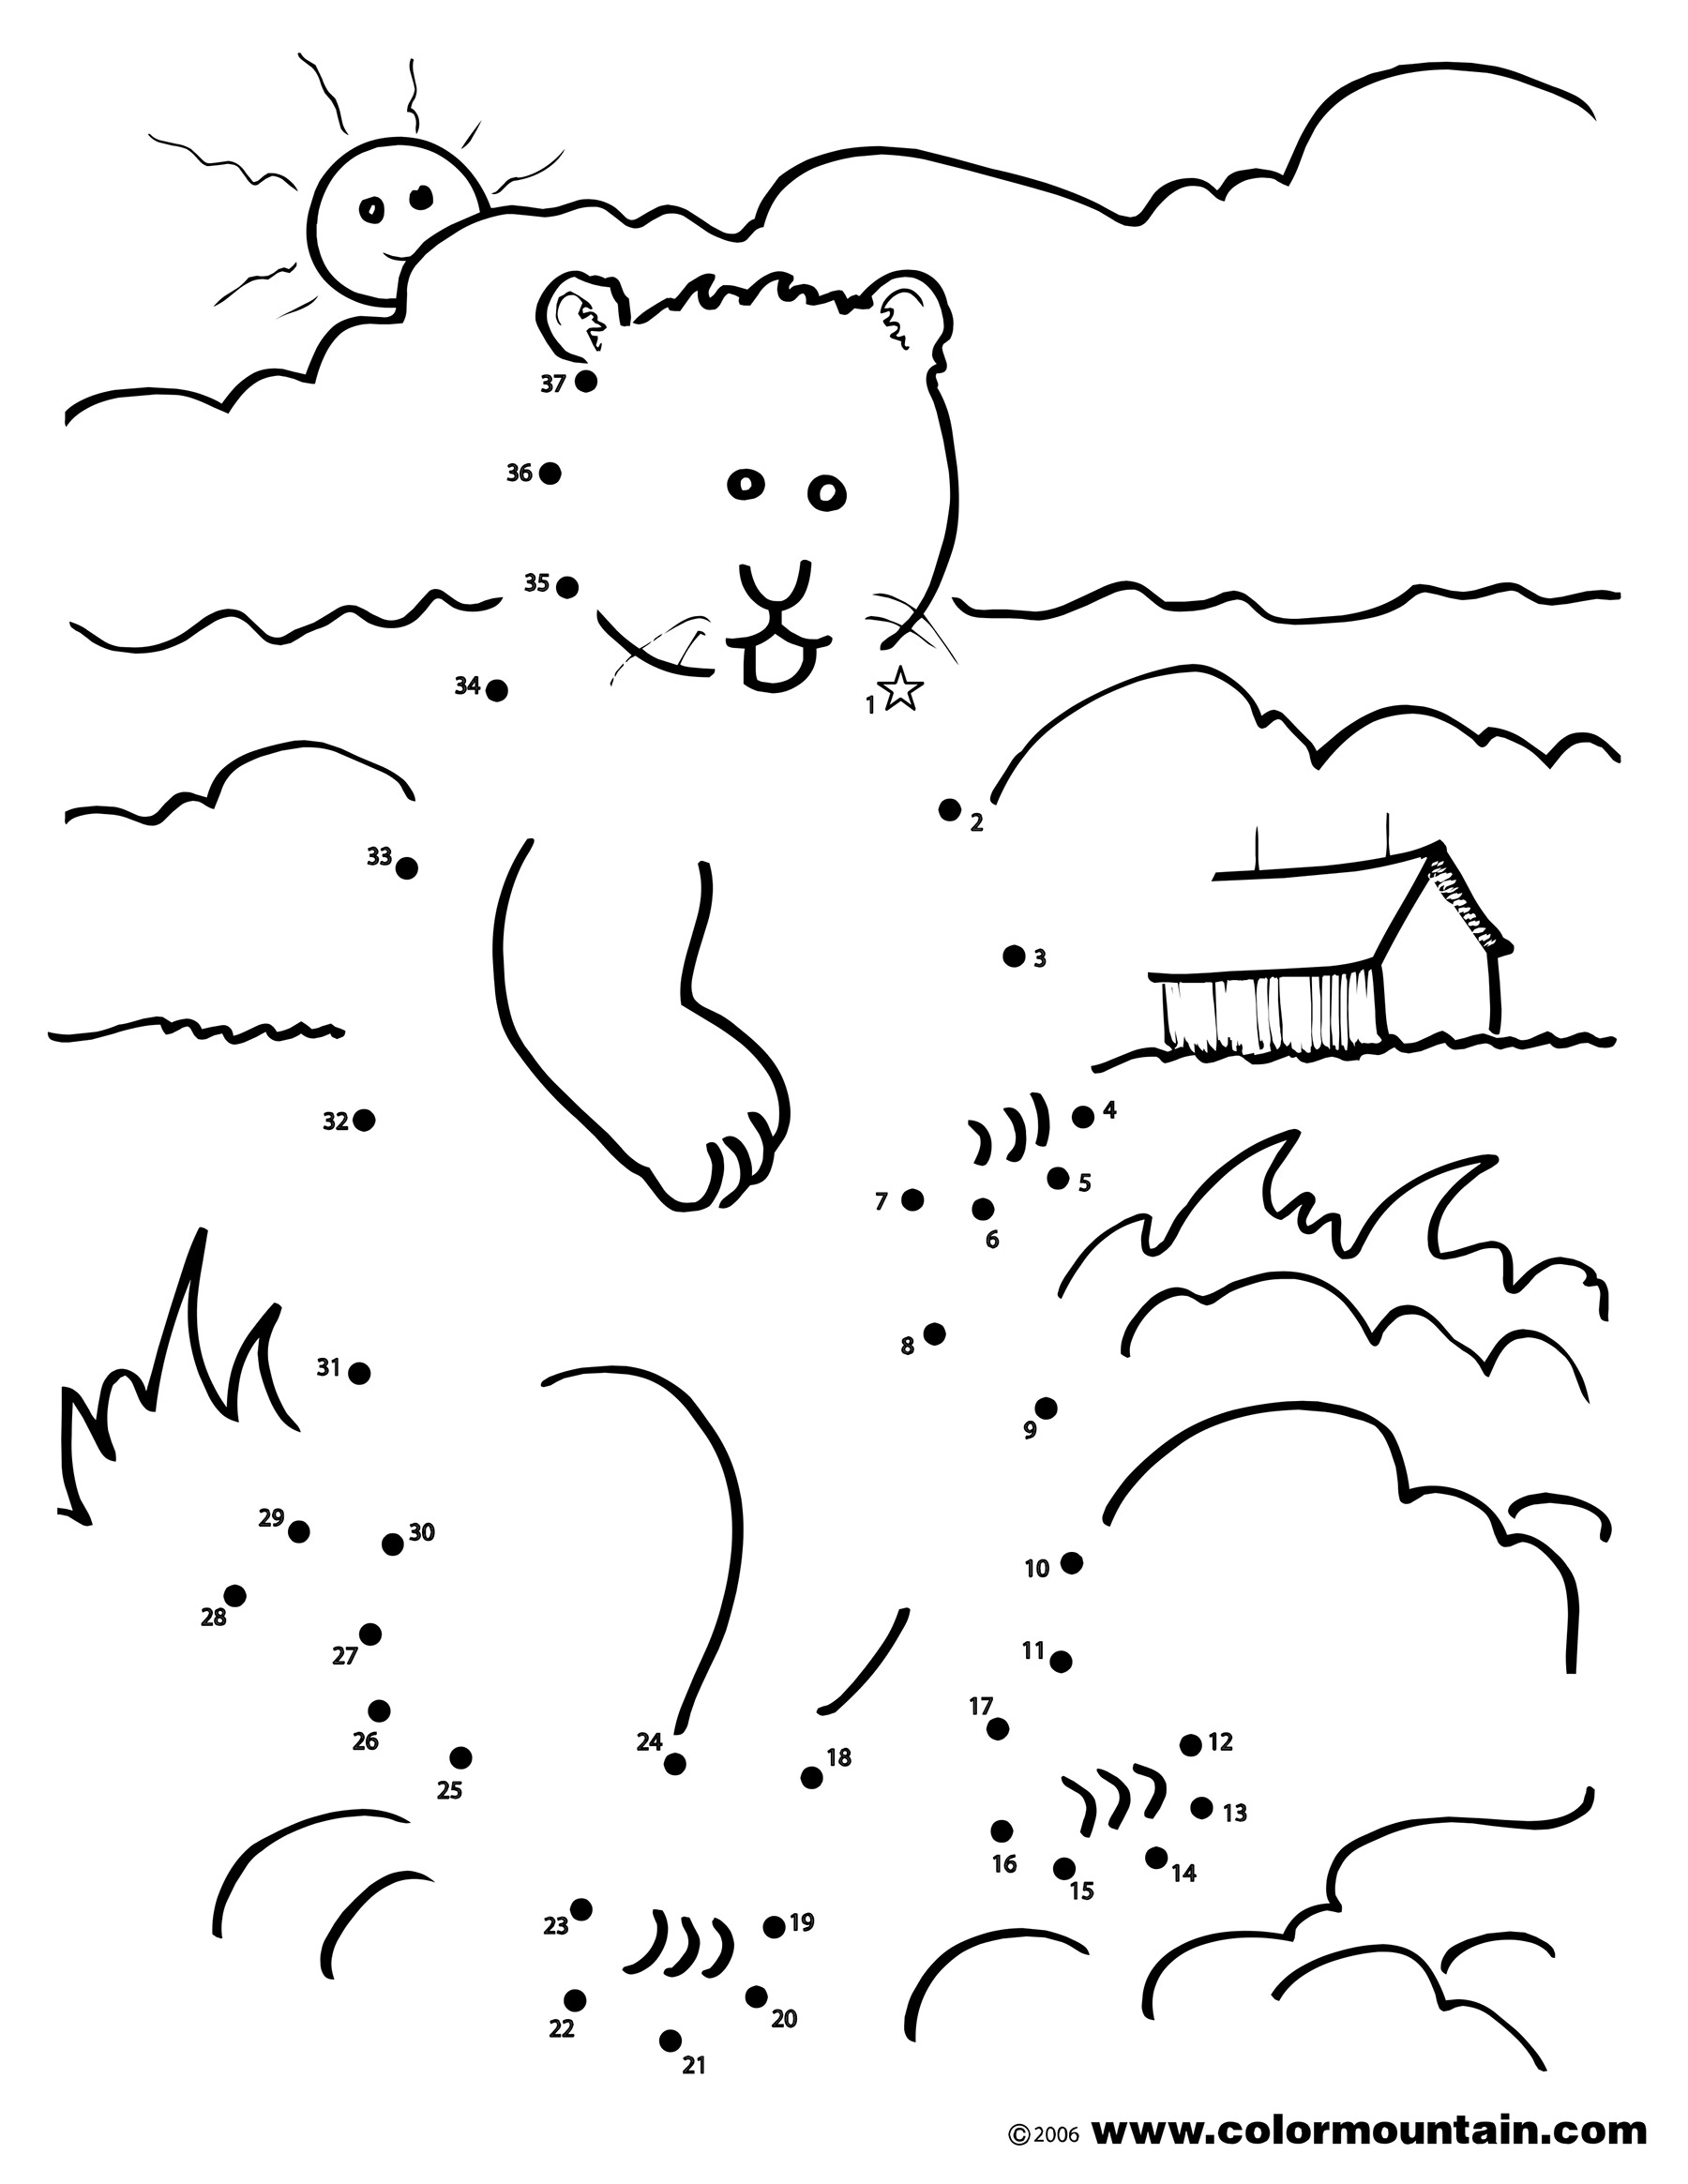 Groundhog Day Printable Coloring Pages Groundhog Day Printable Coloring Pages At Getdrawings Free For